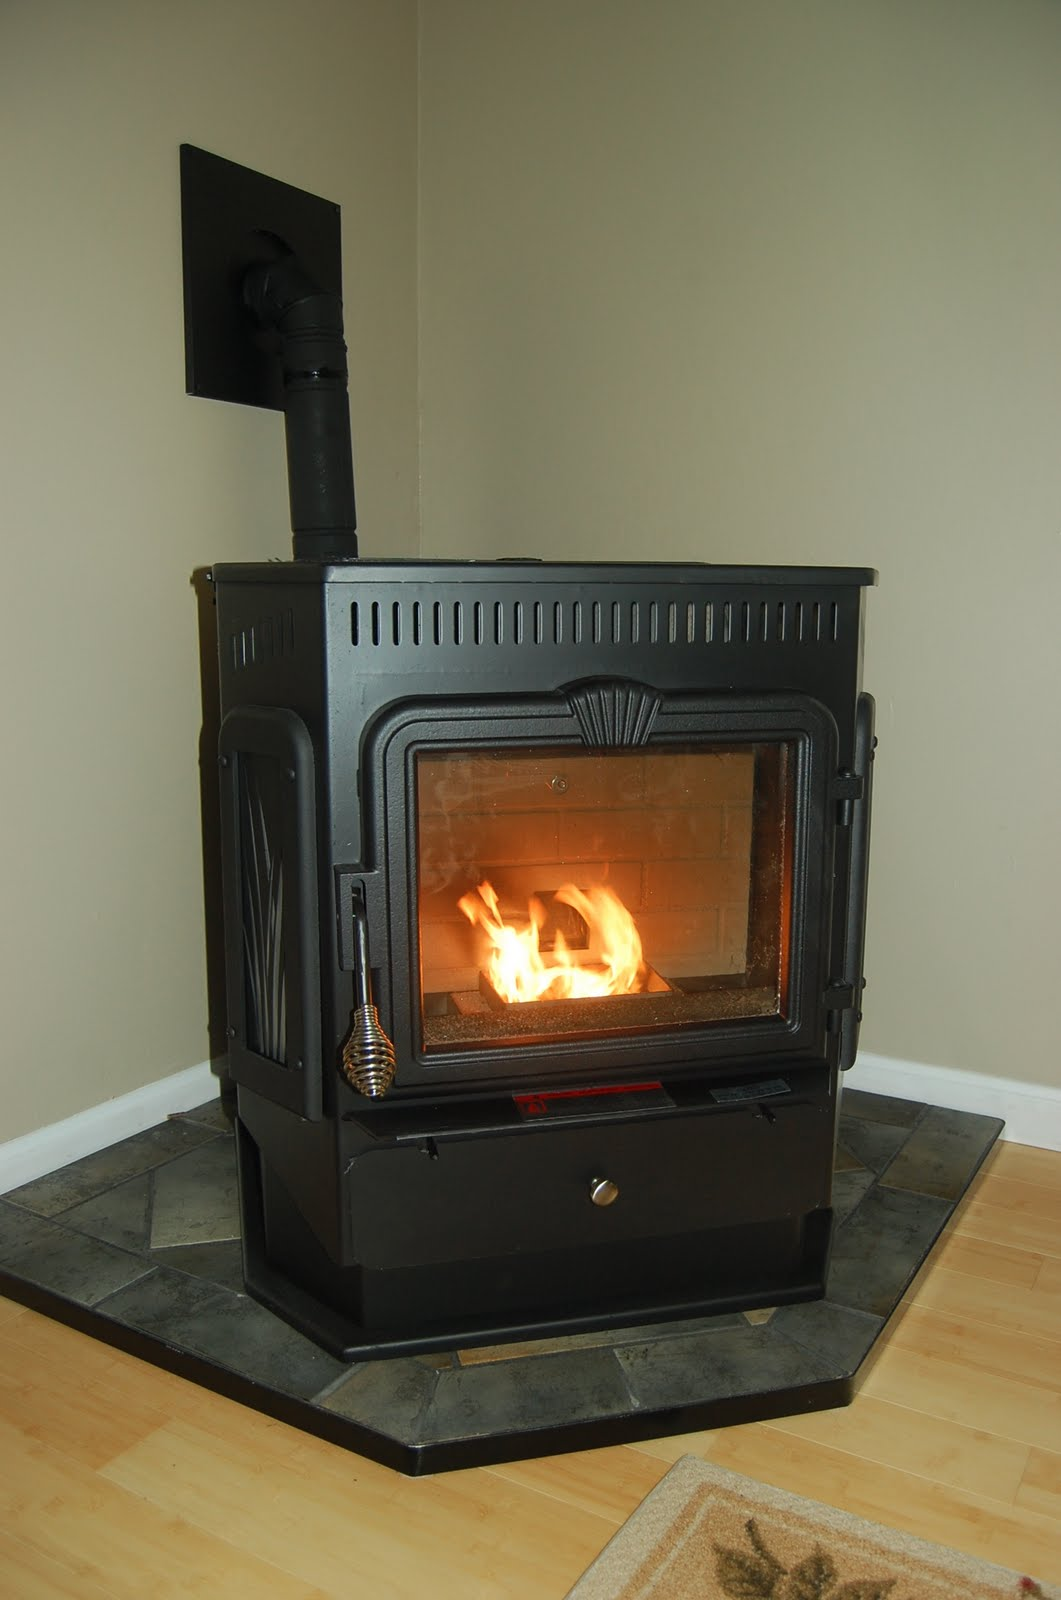 How to Install Summers/ Englander Pellet stove | Let's Be ...